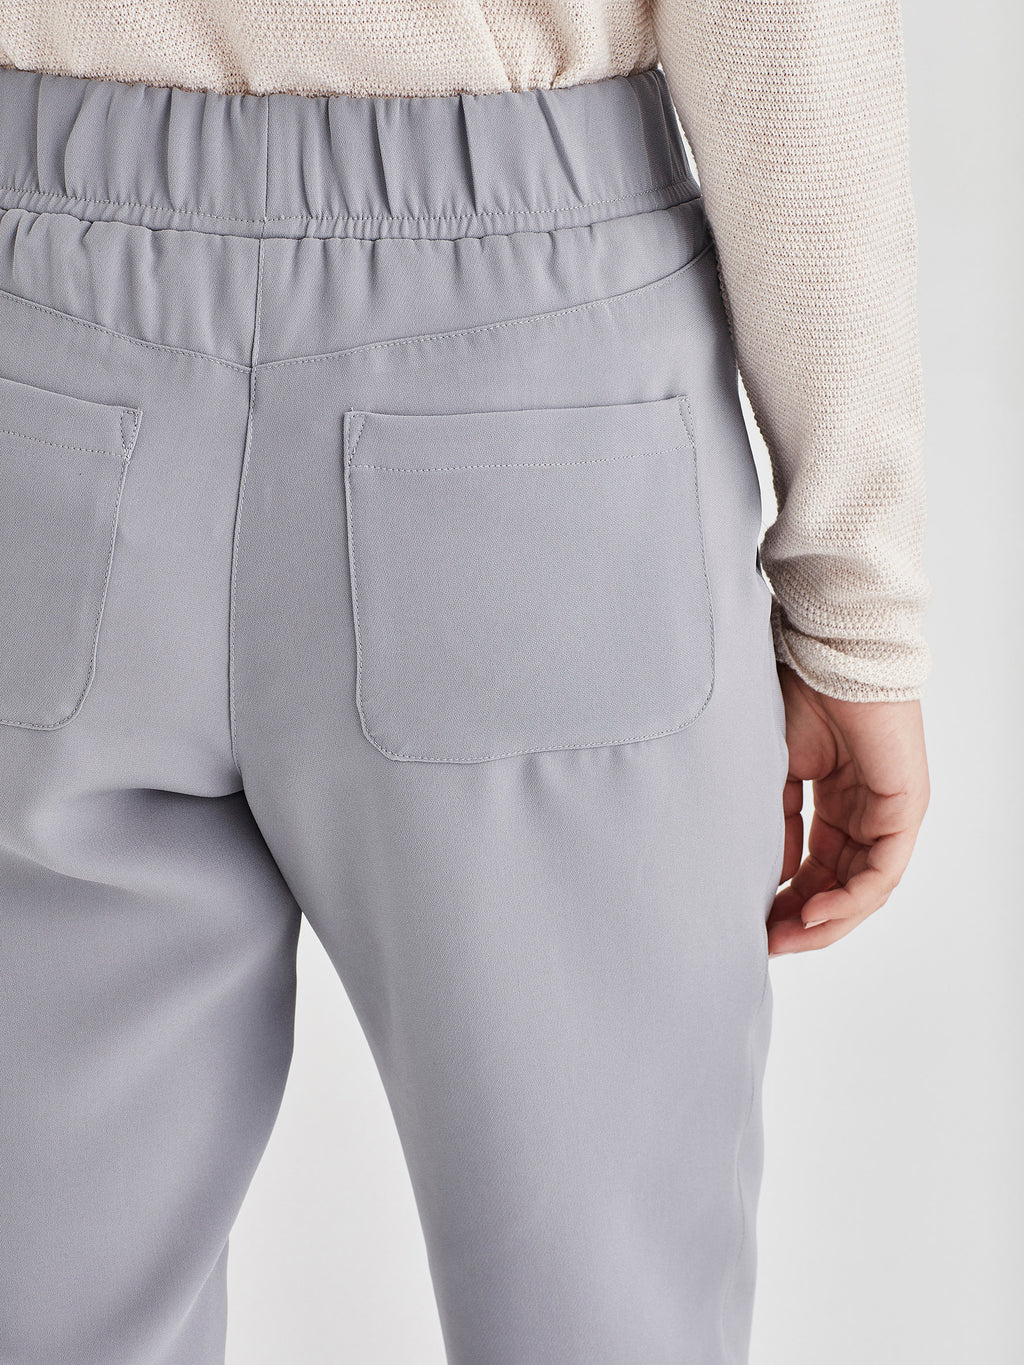 Malfoy Pant (Luxe Suiting) Duck Egg